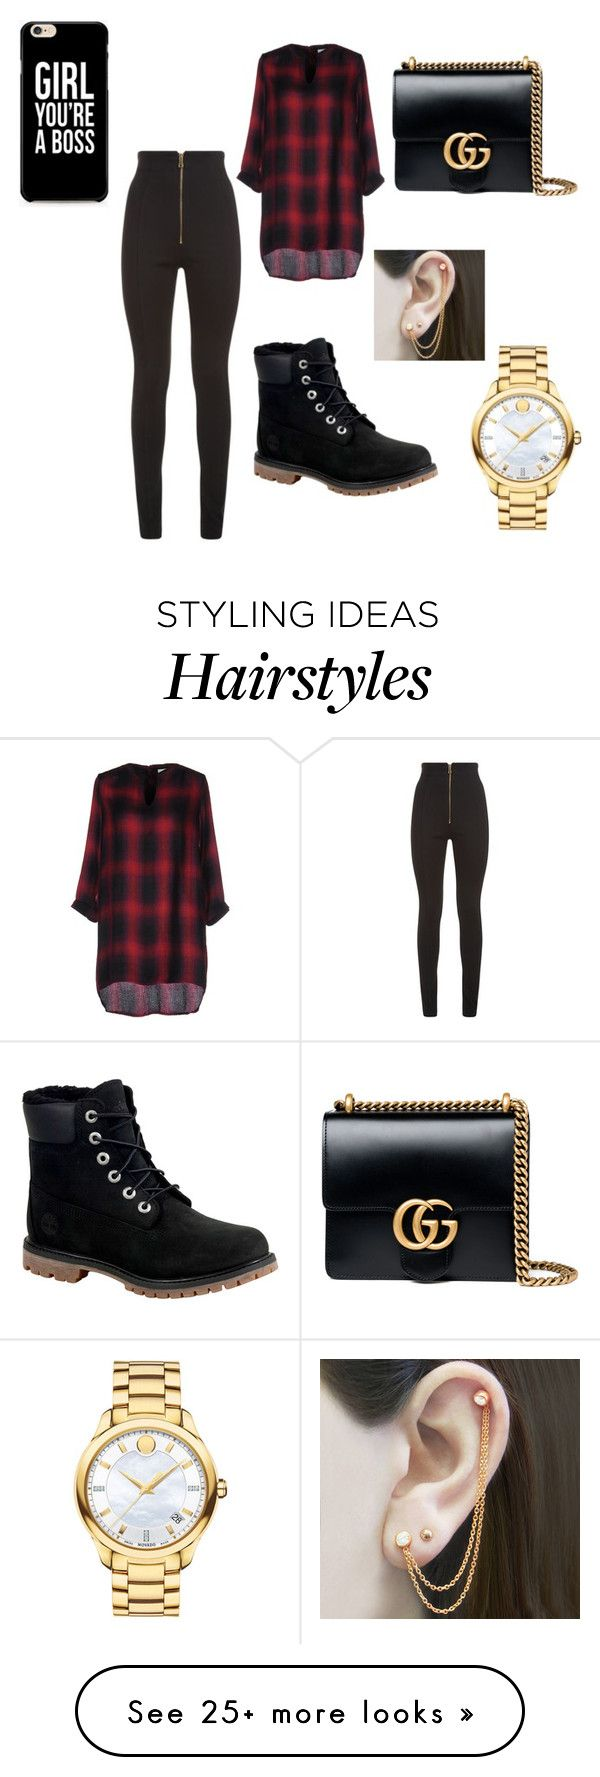 """Slay until your hair turn gray - Bambii"" by apridgen on Polyvore featuring Balmain, Vero Moda, Timberland, Gucci, Movado and Embers Gemstone Jewellery"